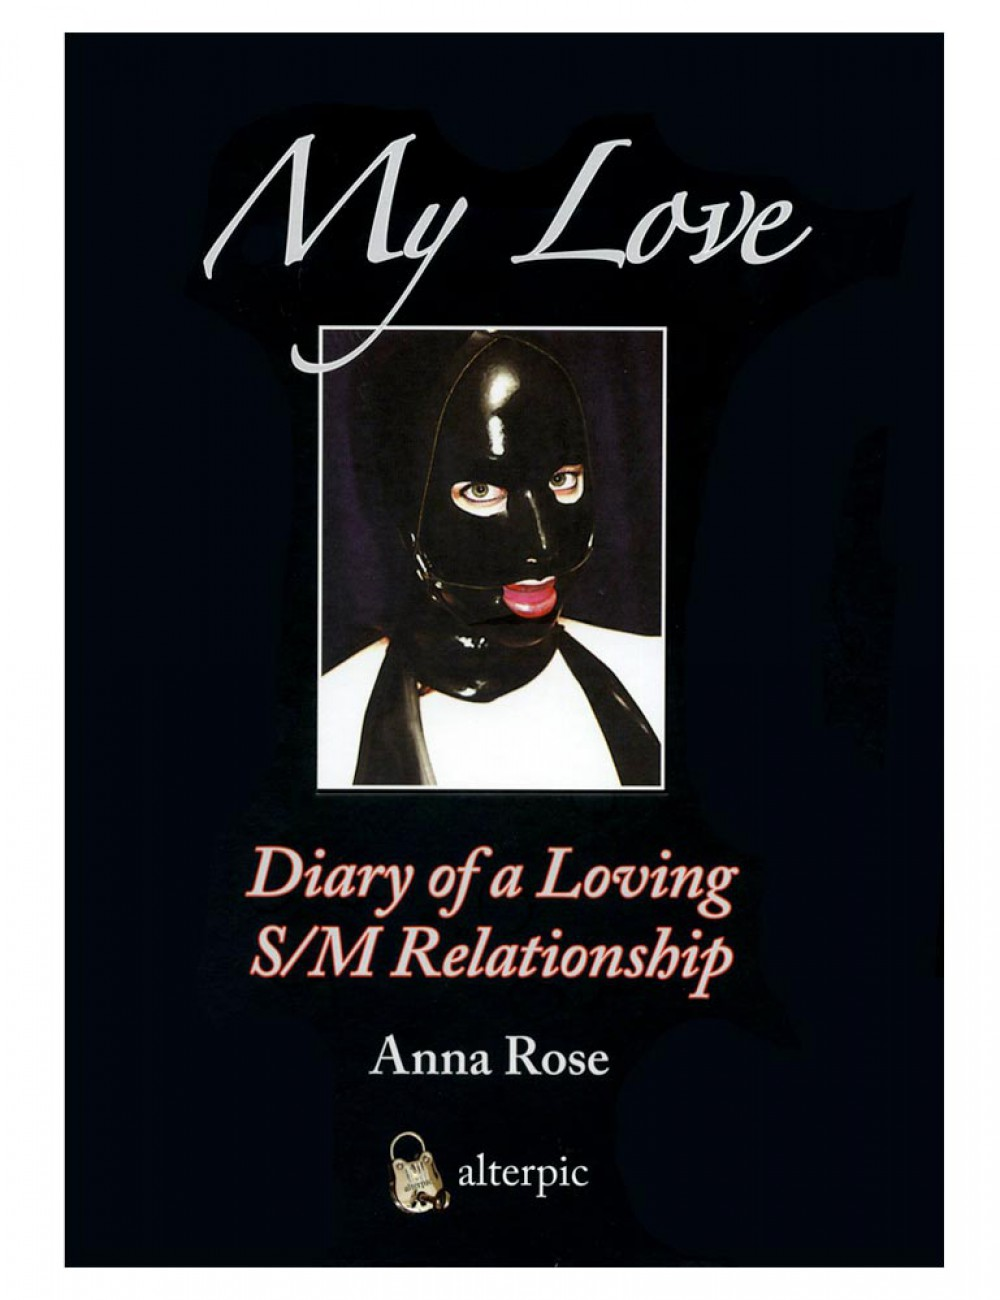 My Love, Diary of a Loving S/M Relationship